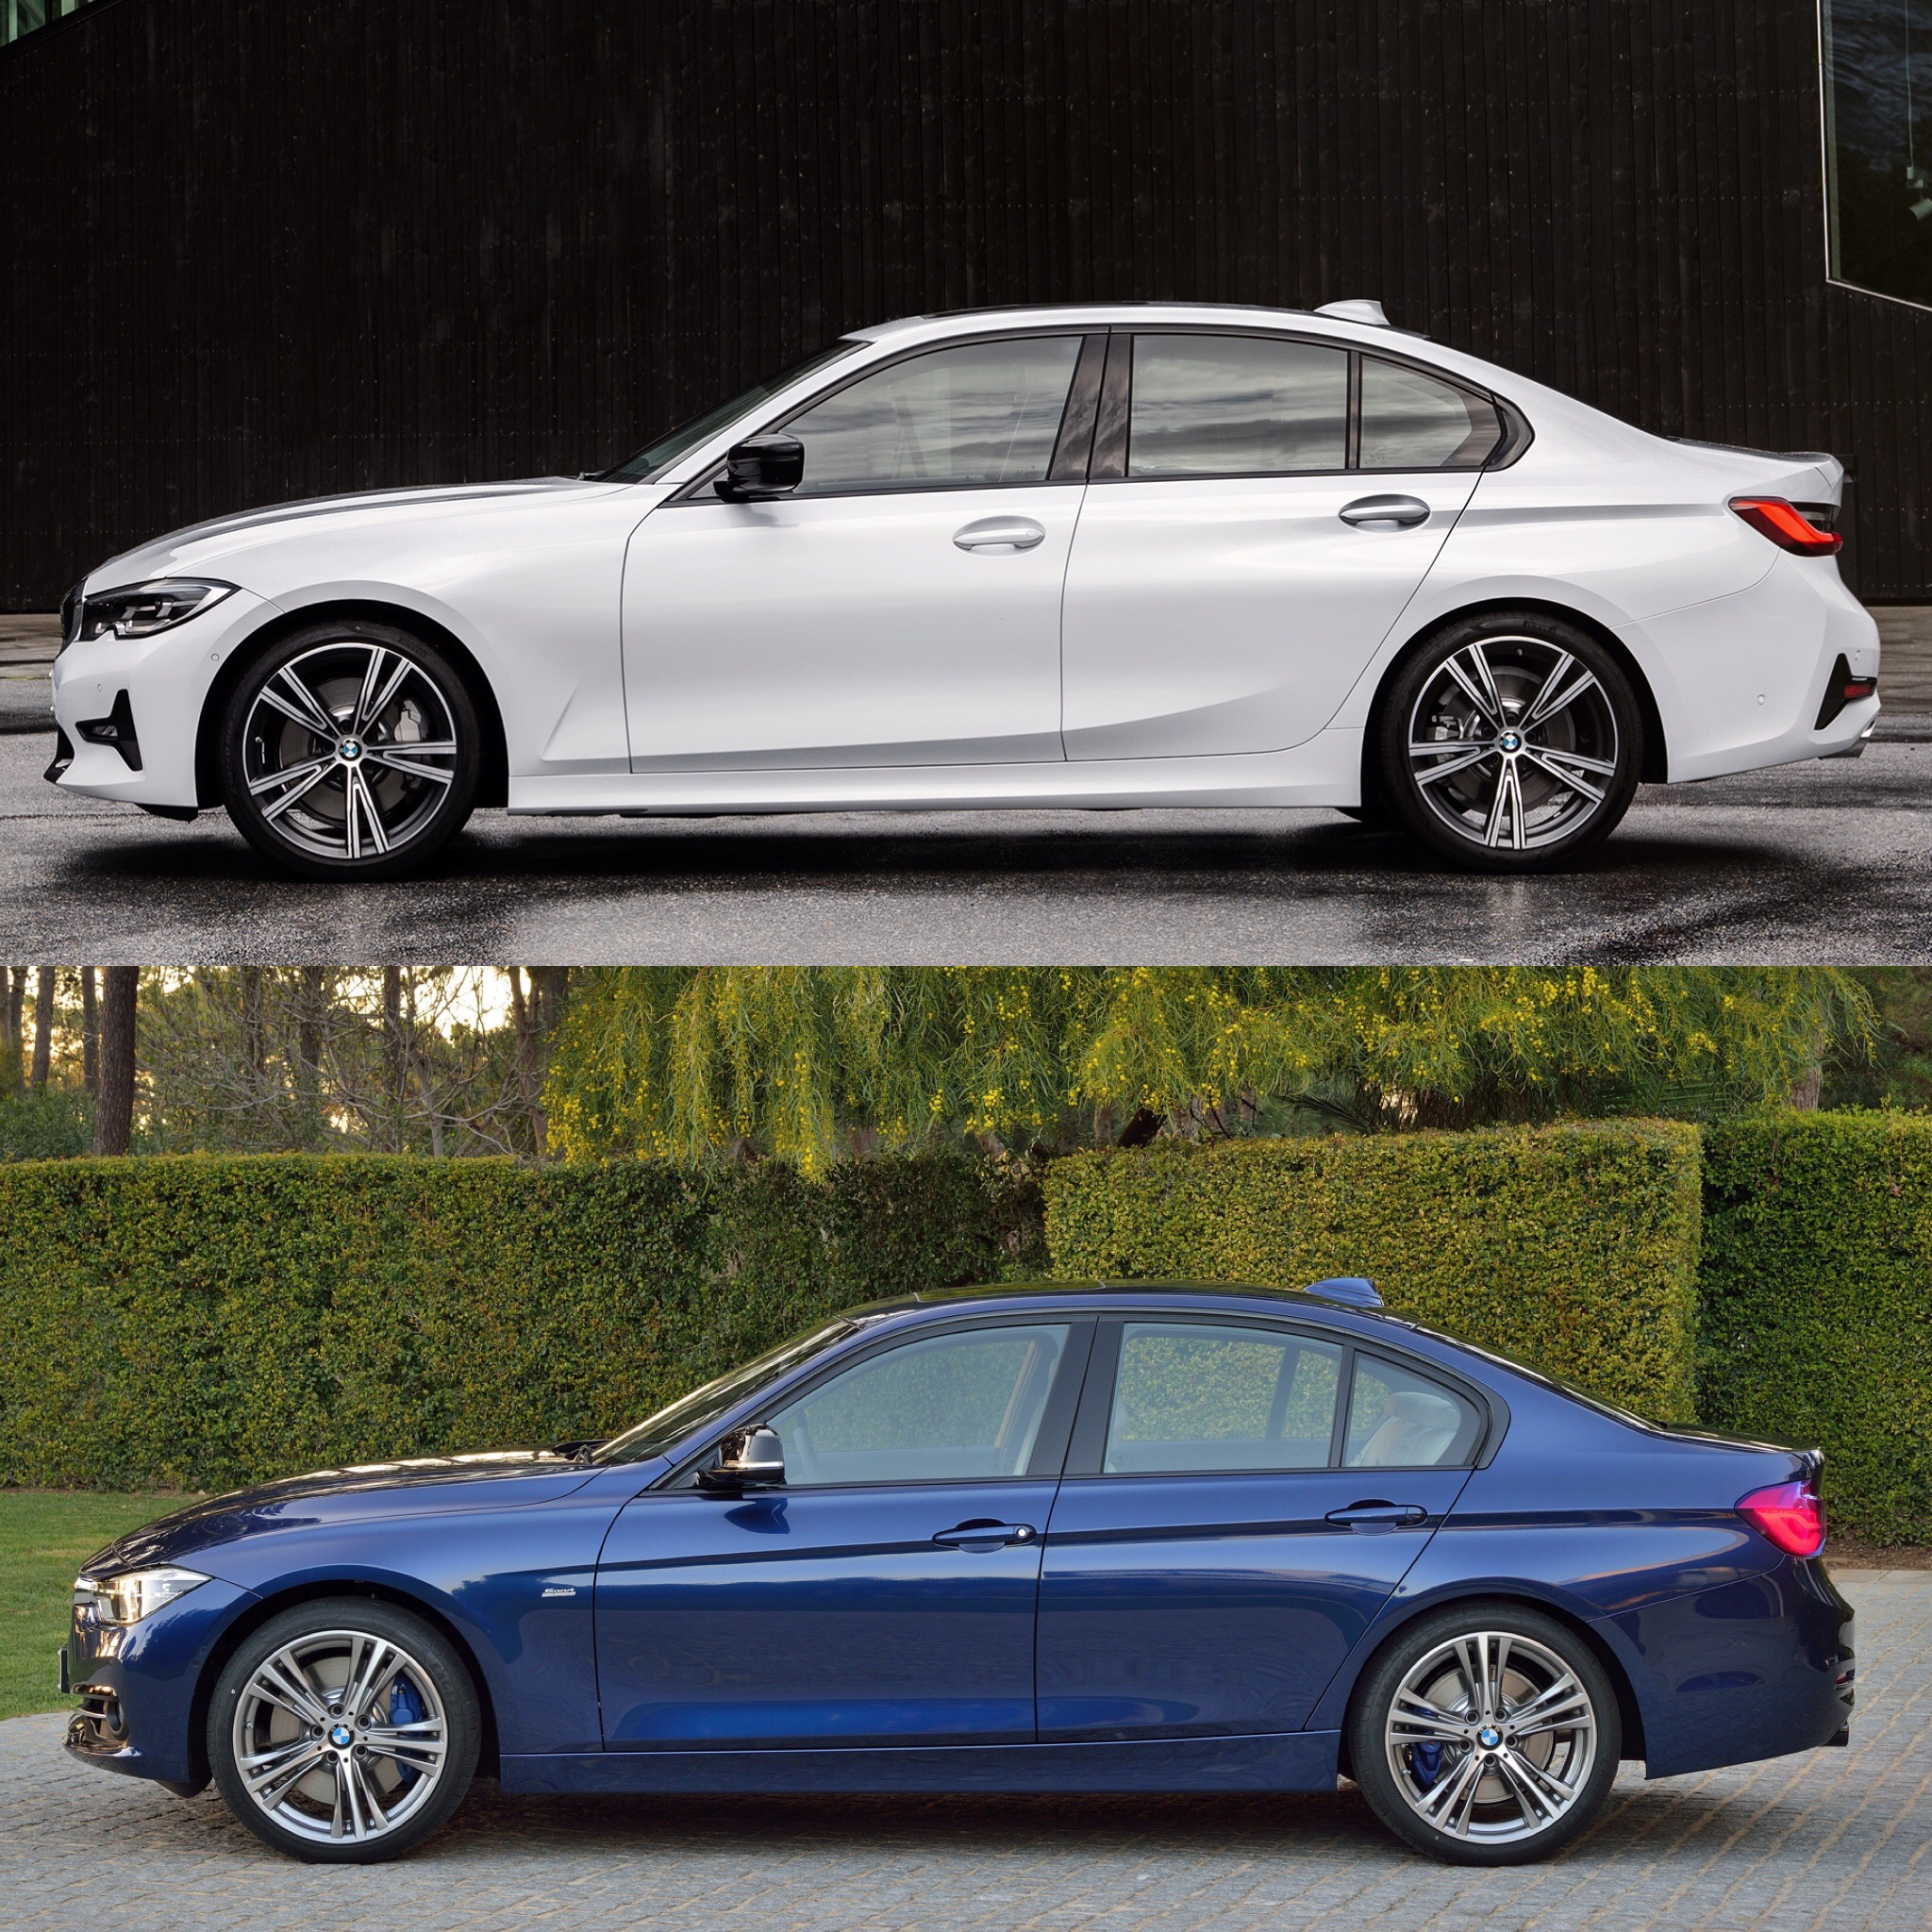 Photo Comparison G20 Bmw 3 Series Vs F30 Bmw 3 Series